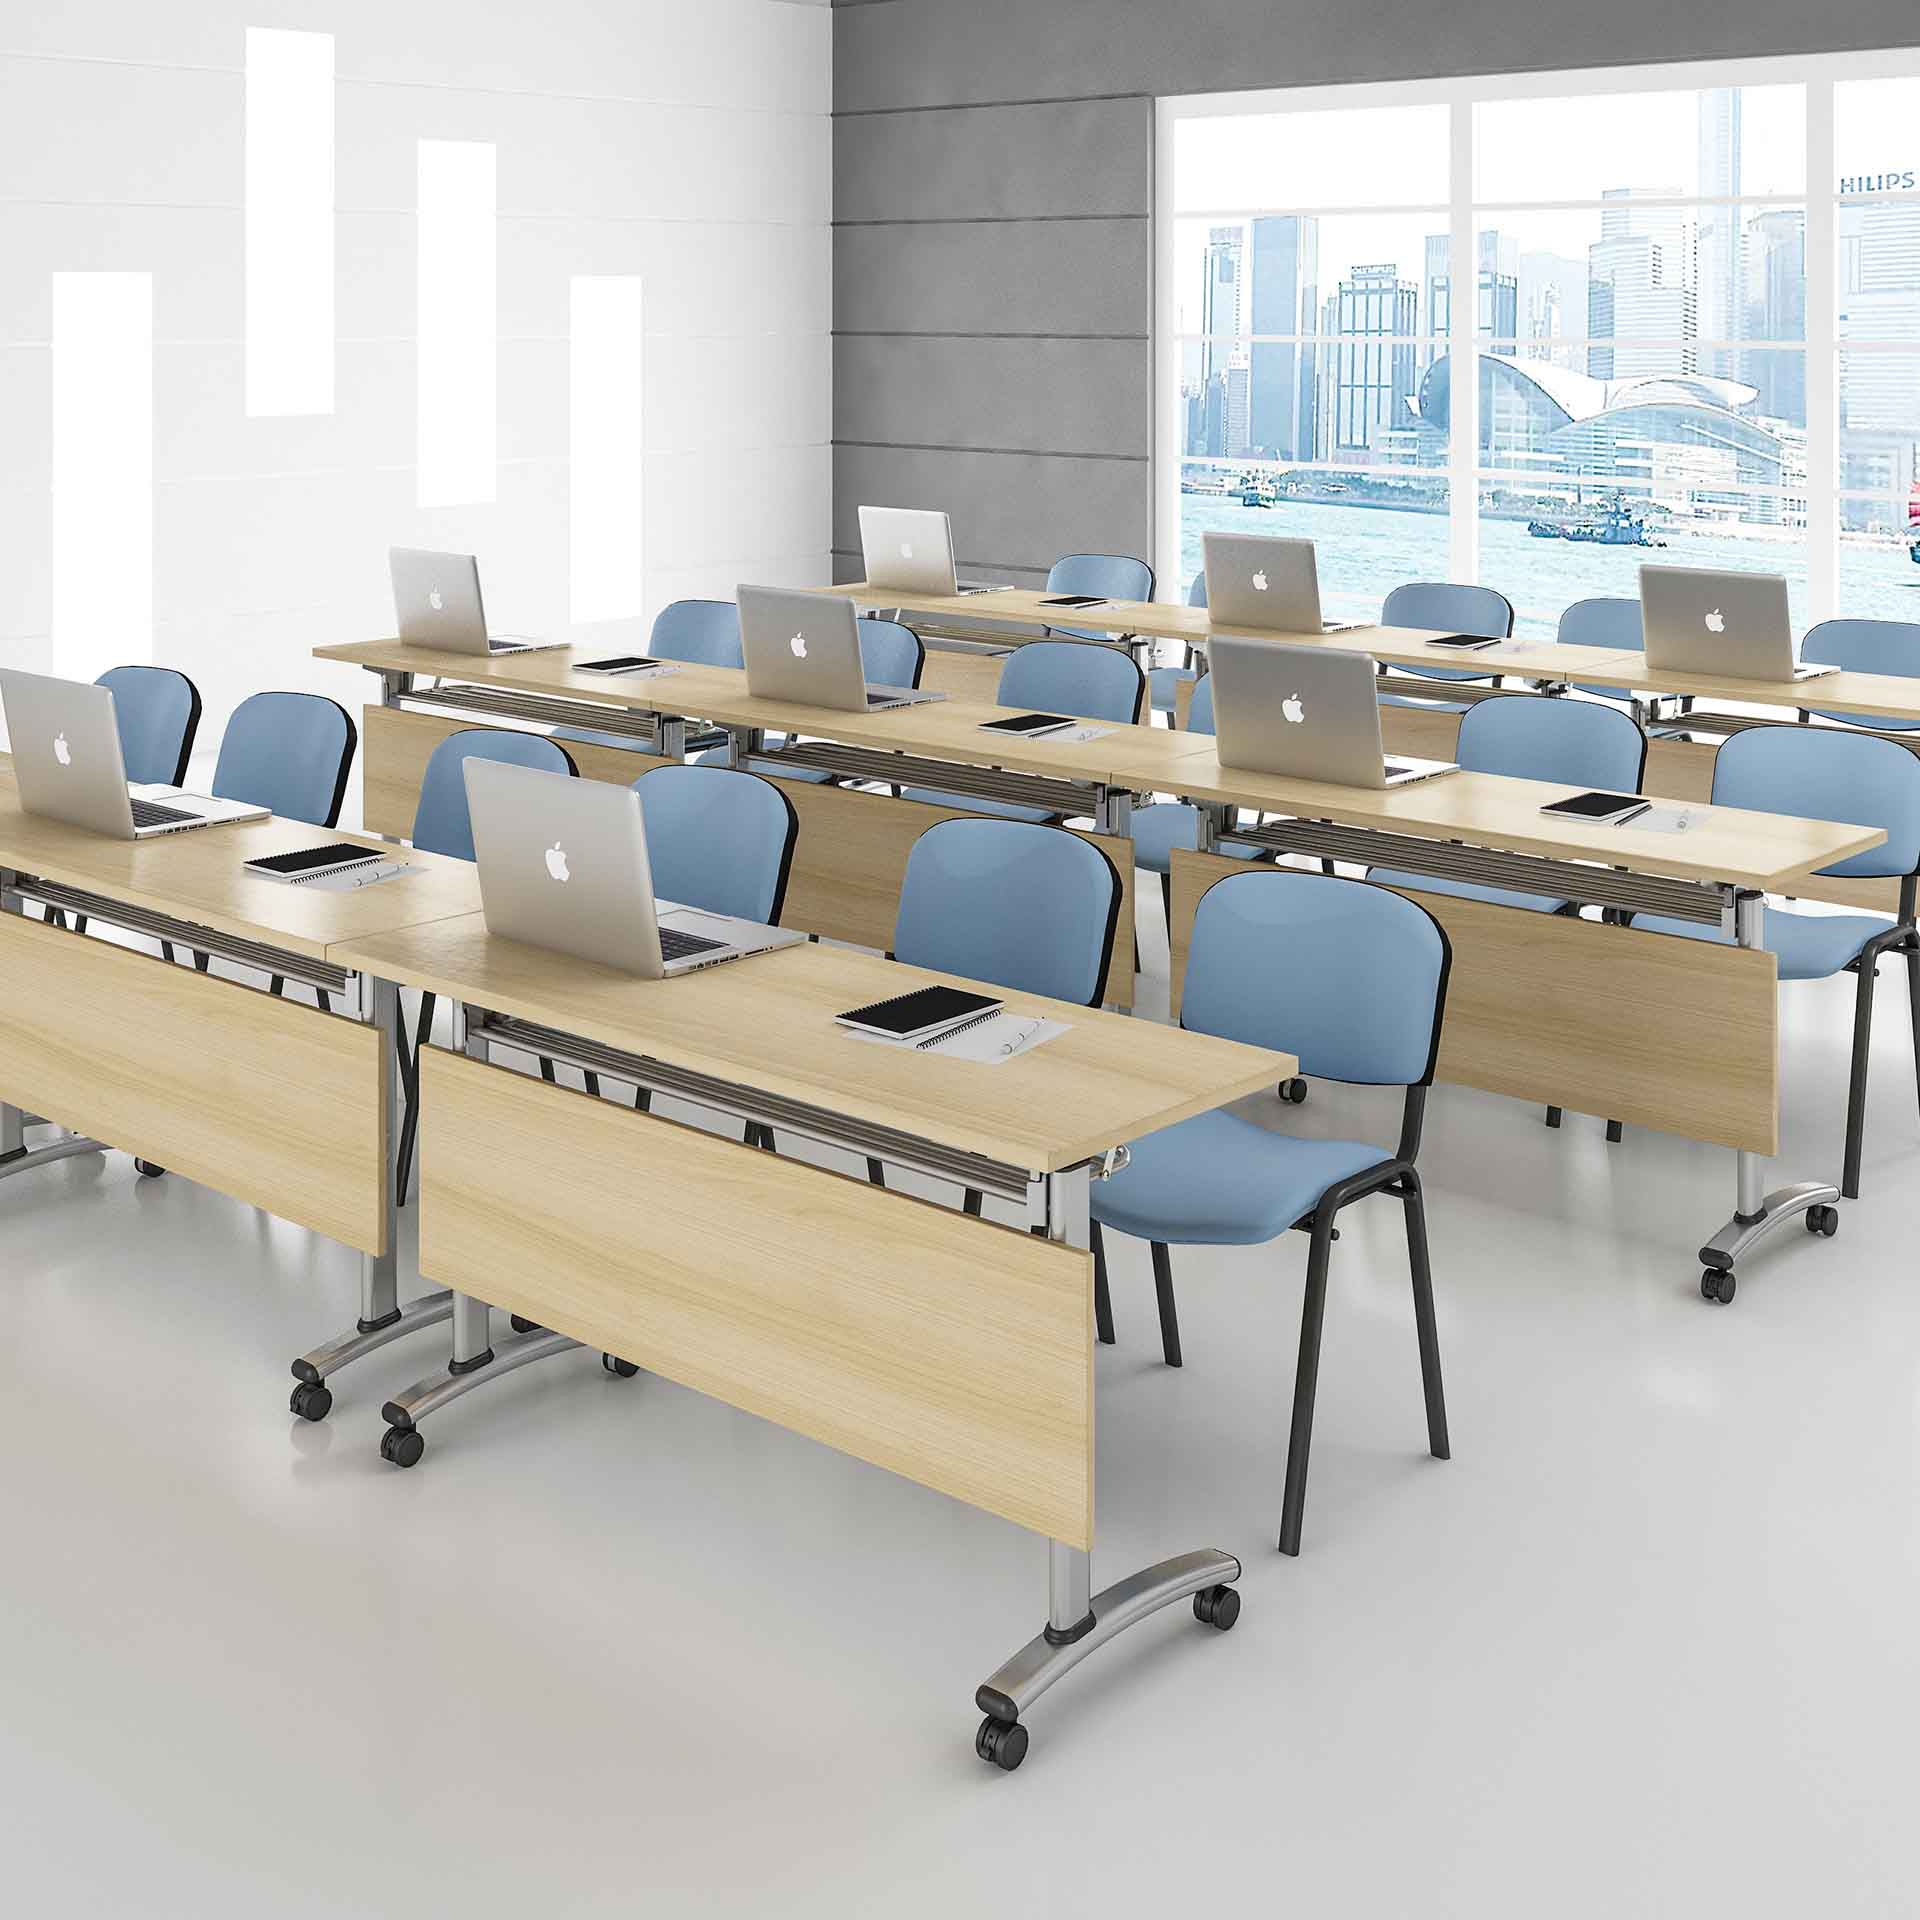 NAZ furniture professional 12 conference table on wheels for training room-8